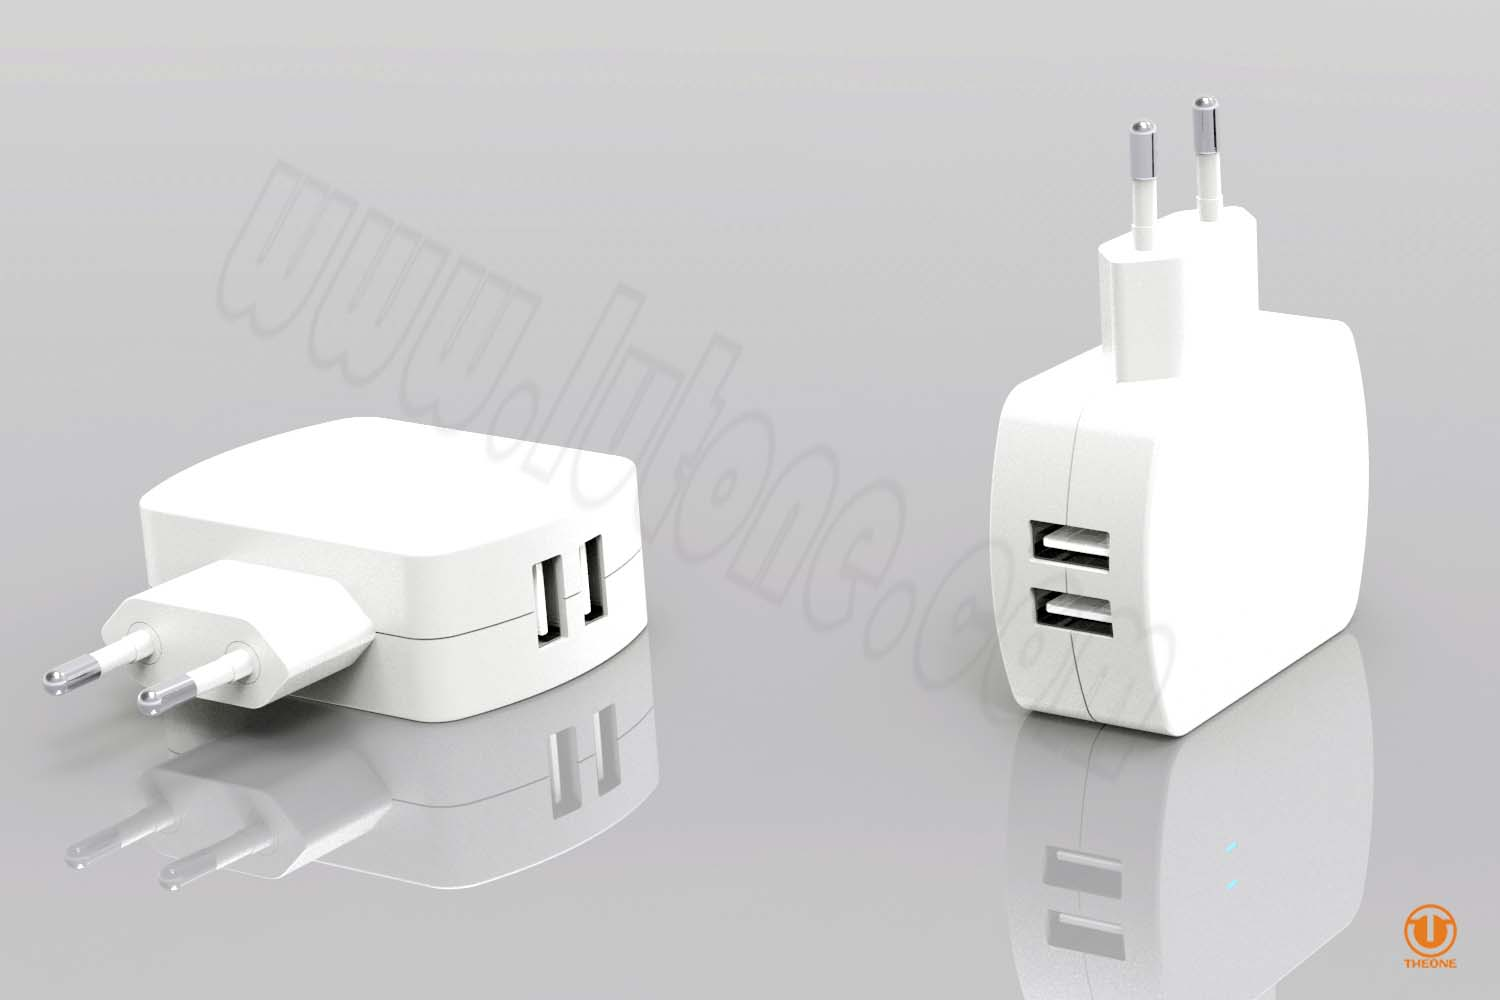 tc02b6-4 dual usb wall charger